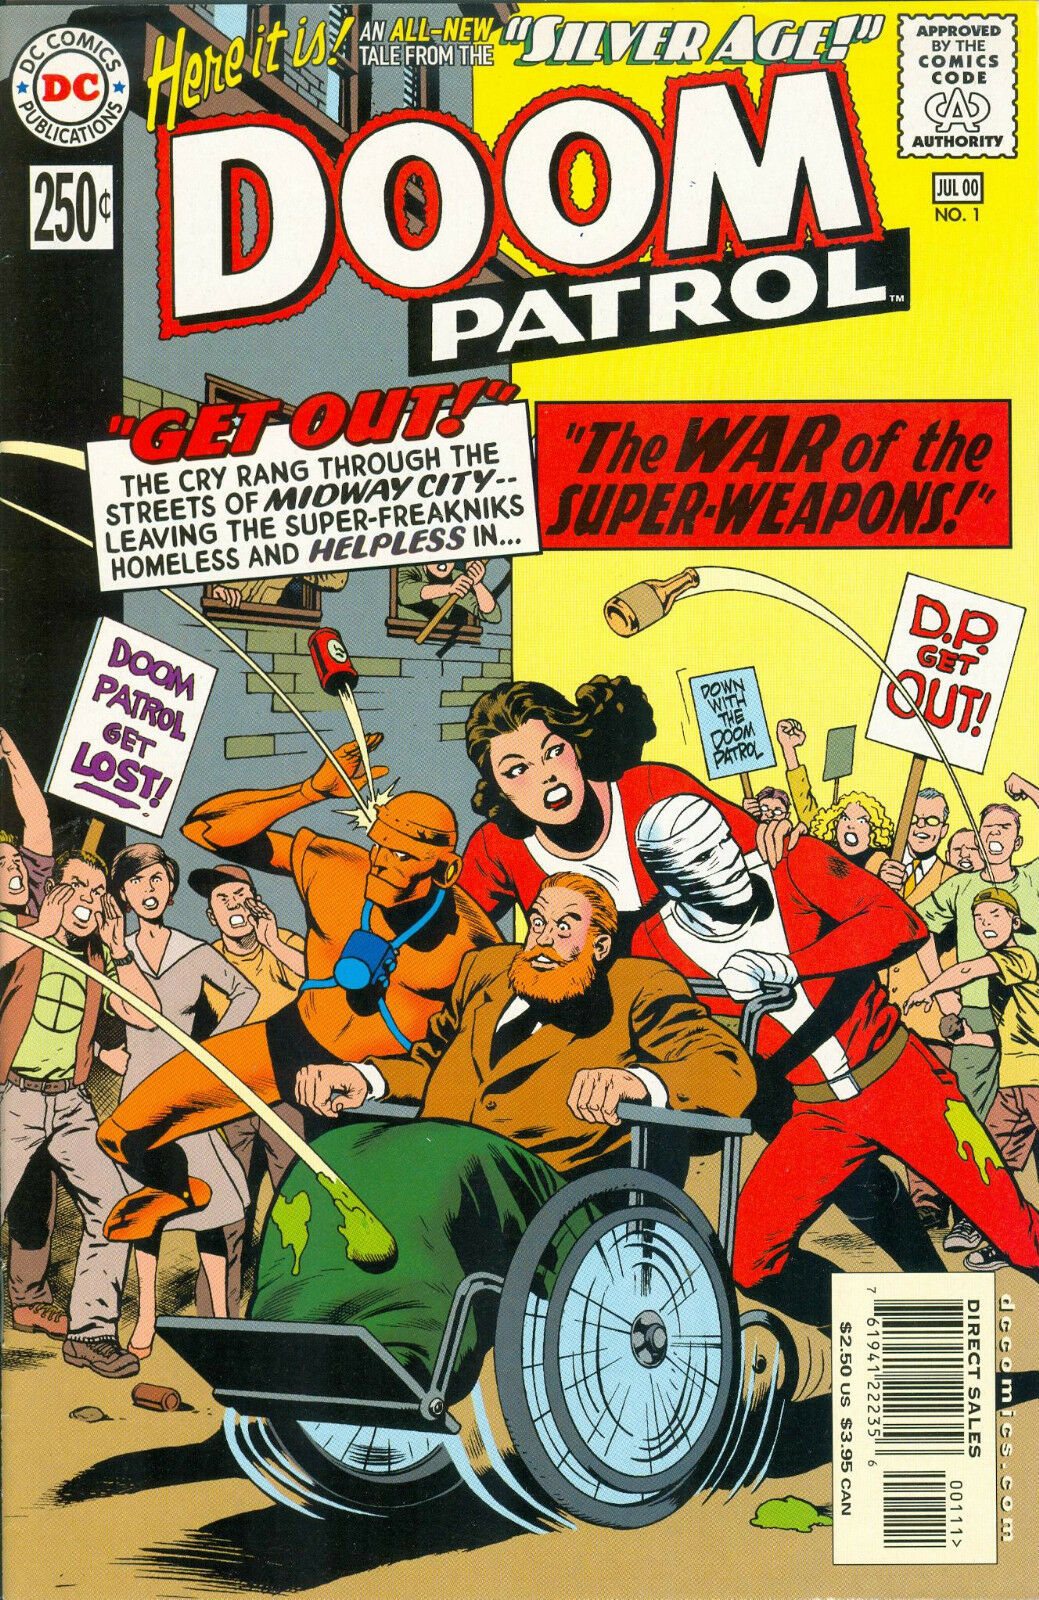 Silver Age Doom Patrol 1 Dc Comics July 2000 250 Cover